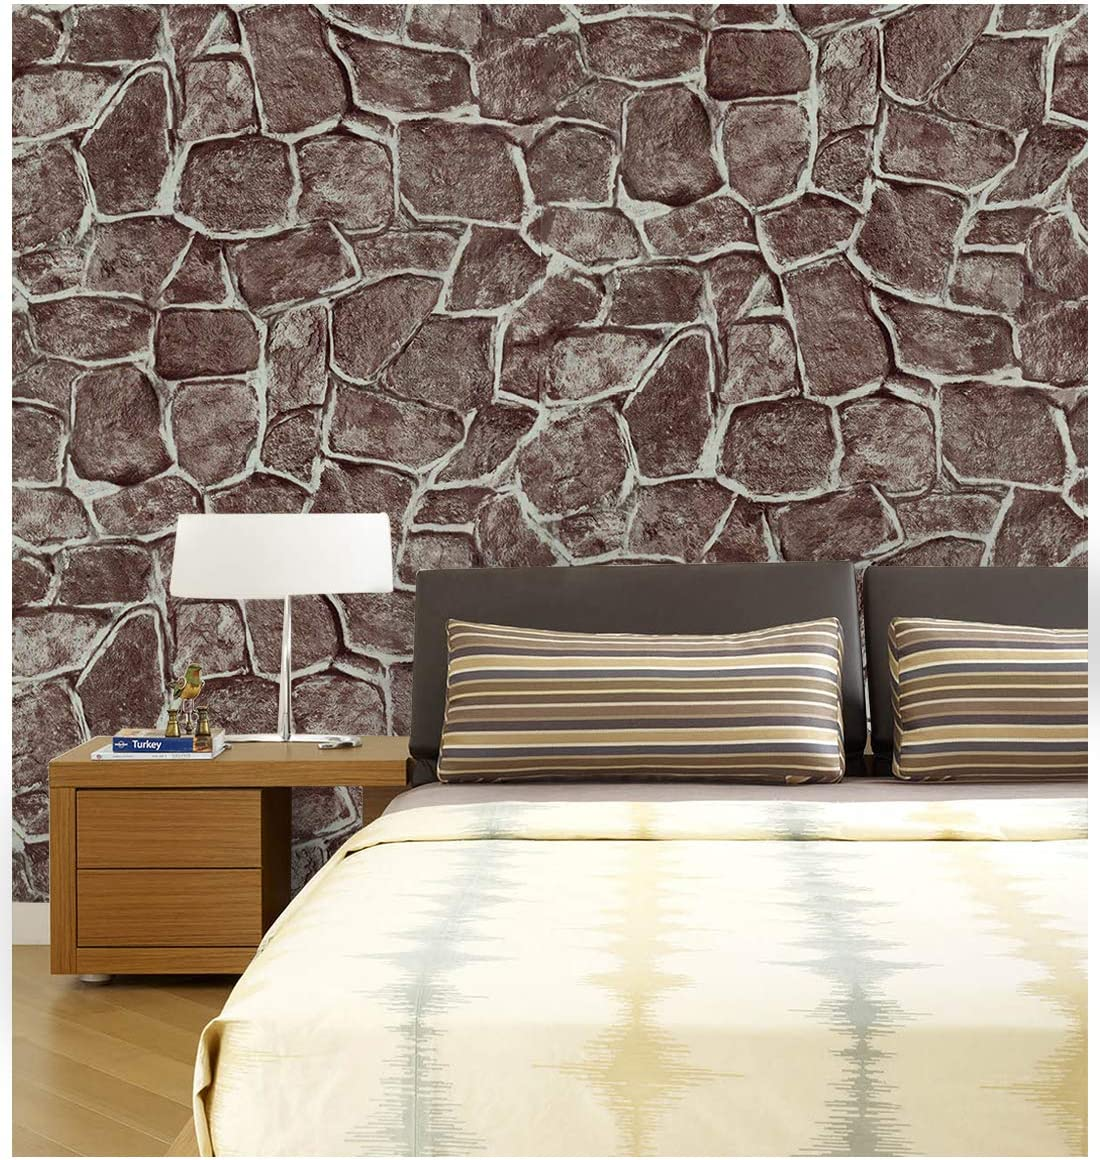 Dwind D1303 Realistic Stone Contact Paper Self Adhesive Wallpaper 17.17 x 118 Reddish Brown Peel and Stick Wallpaper for Home Kitchen Countertop Cabinet Furniture Vinyl Waterproof